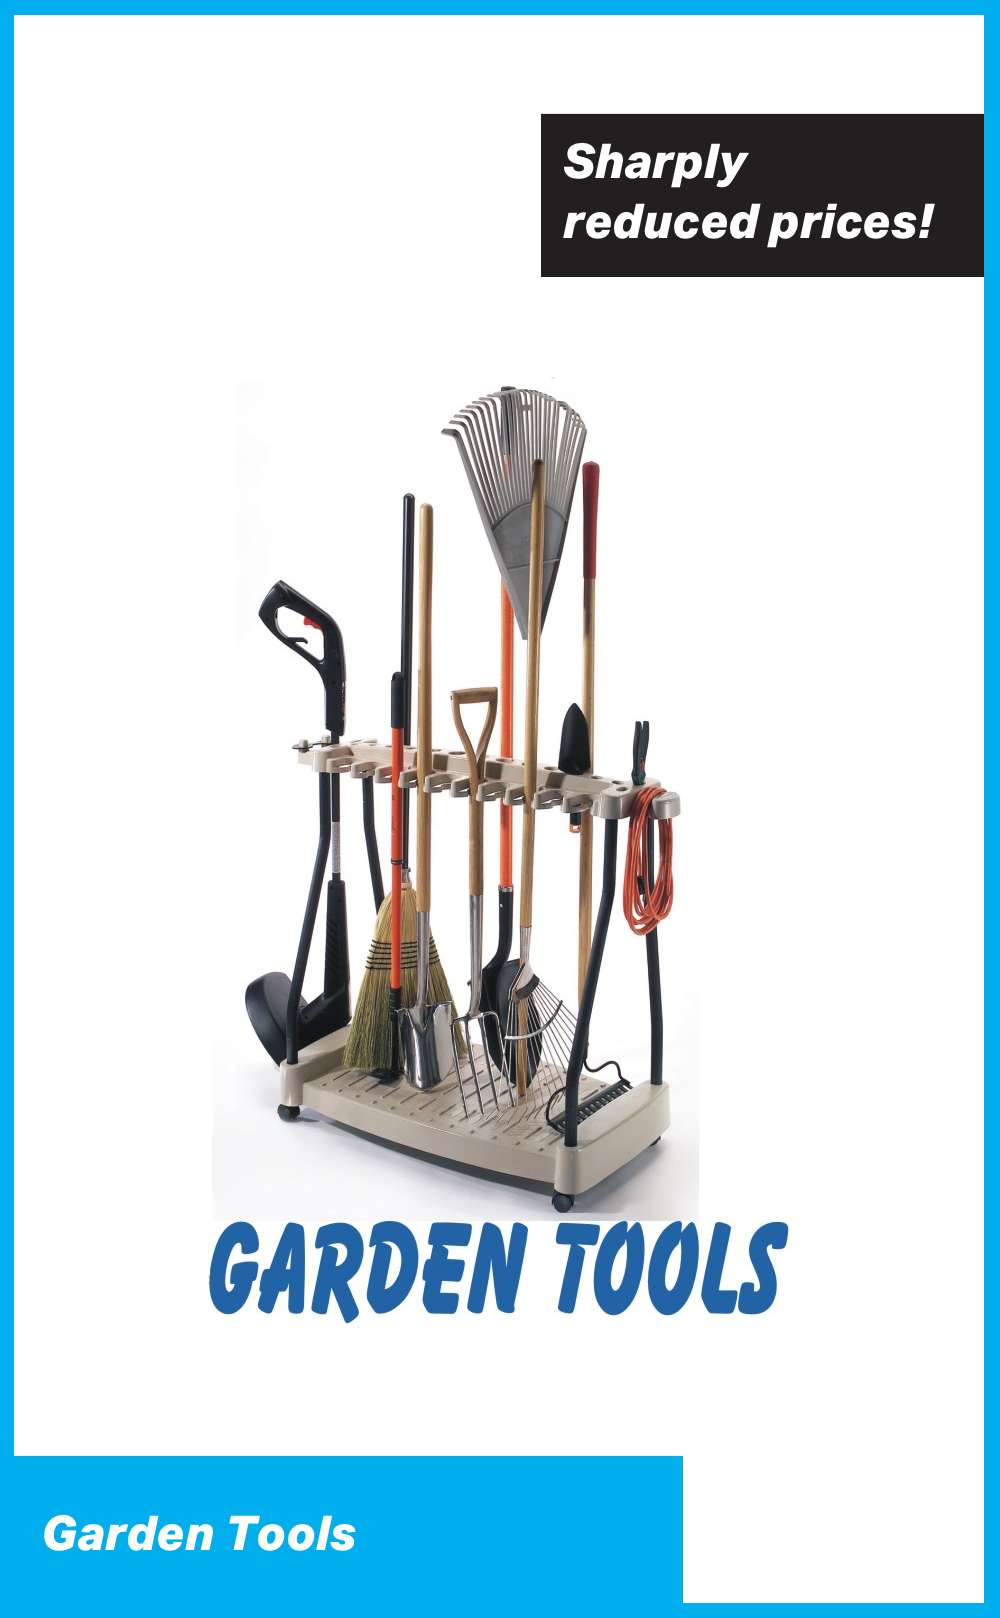 Garden Tools at Sharply Reduced Prices!